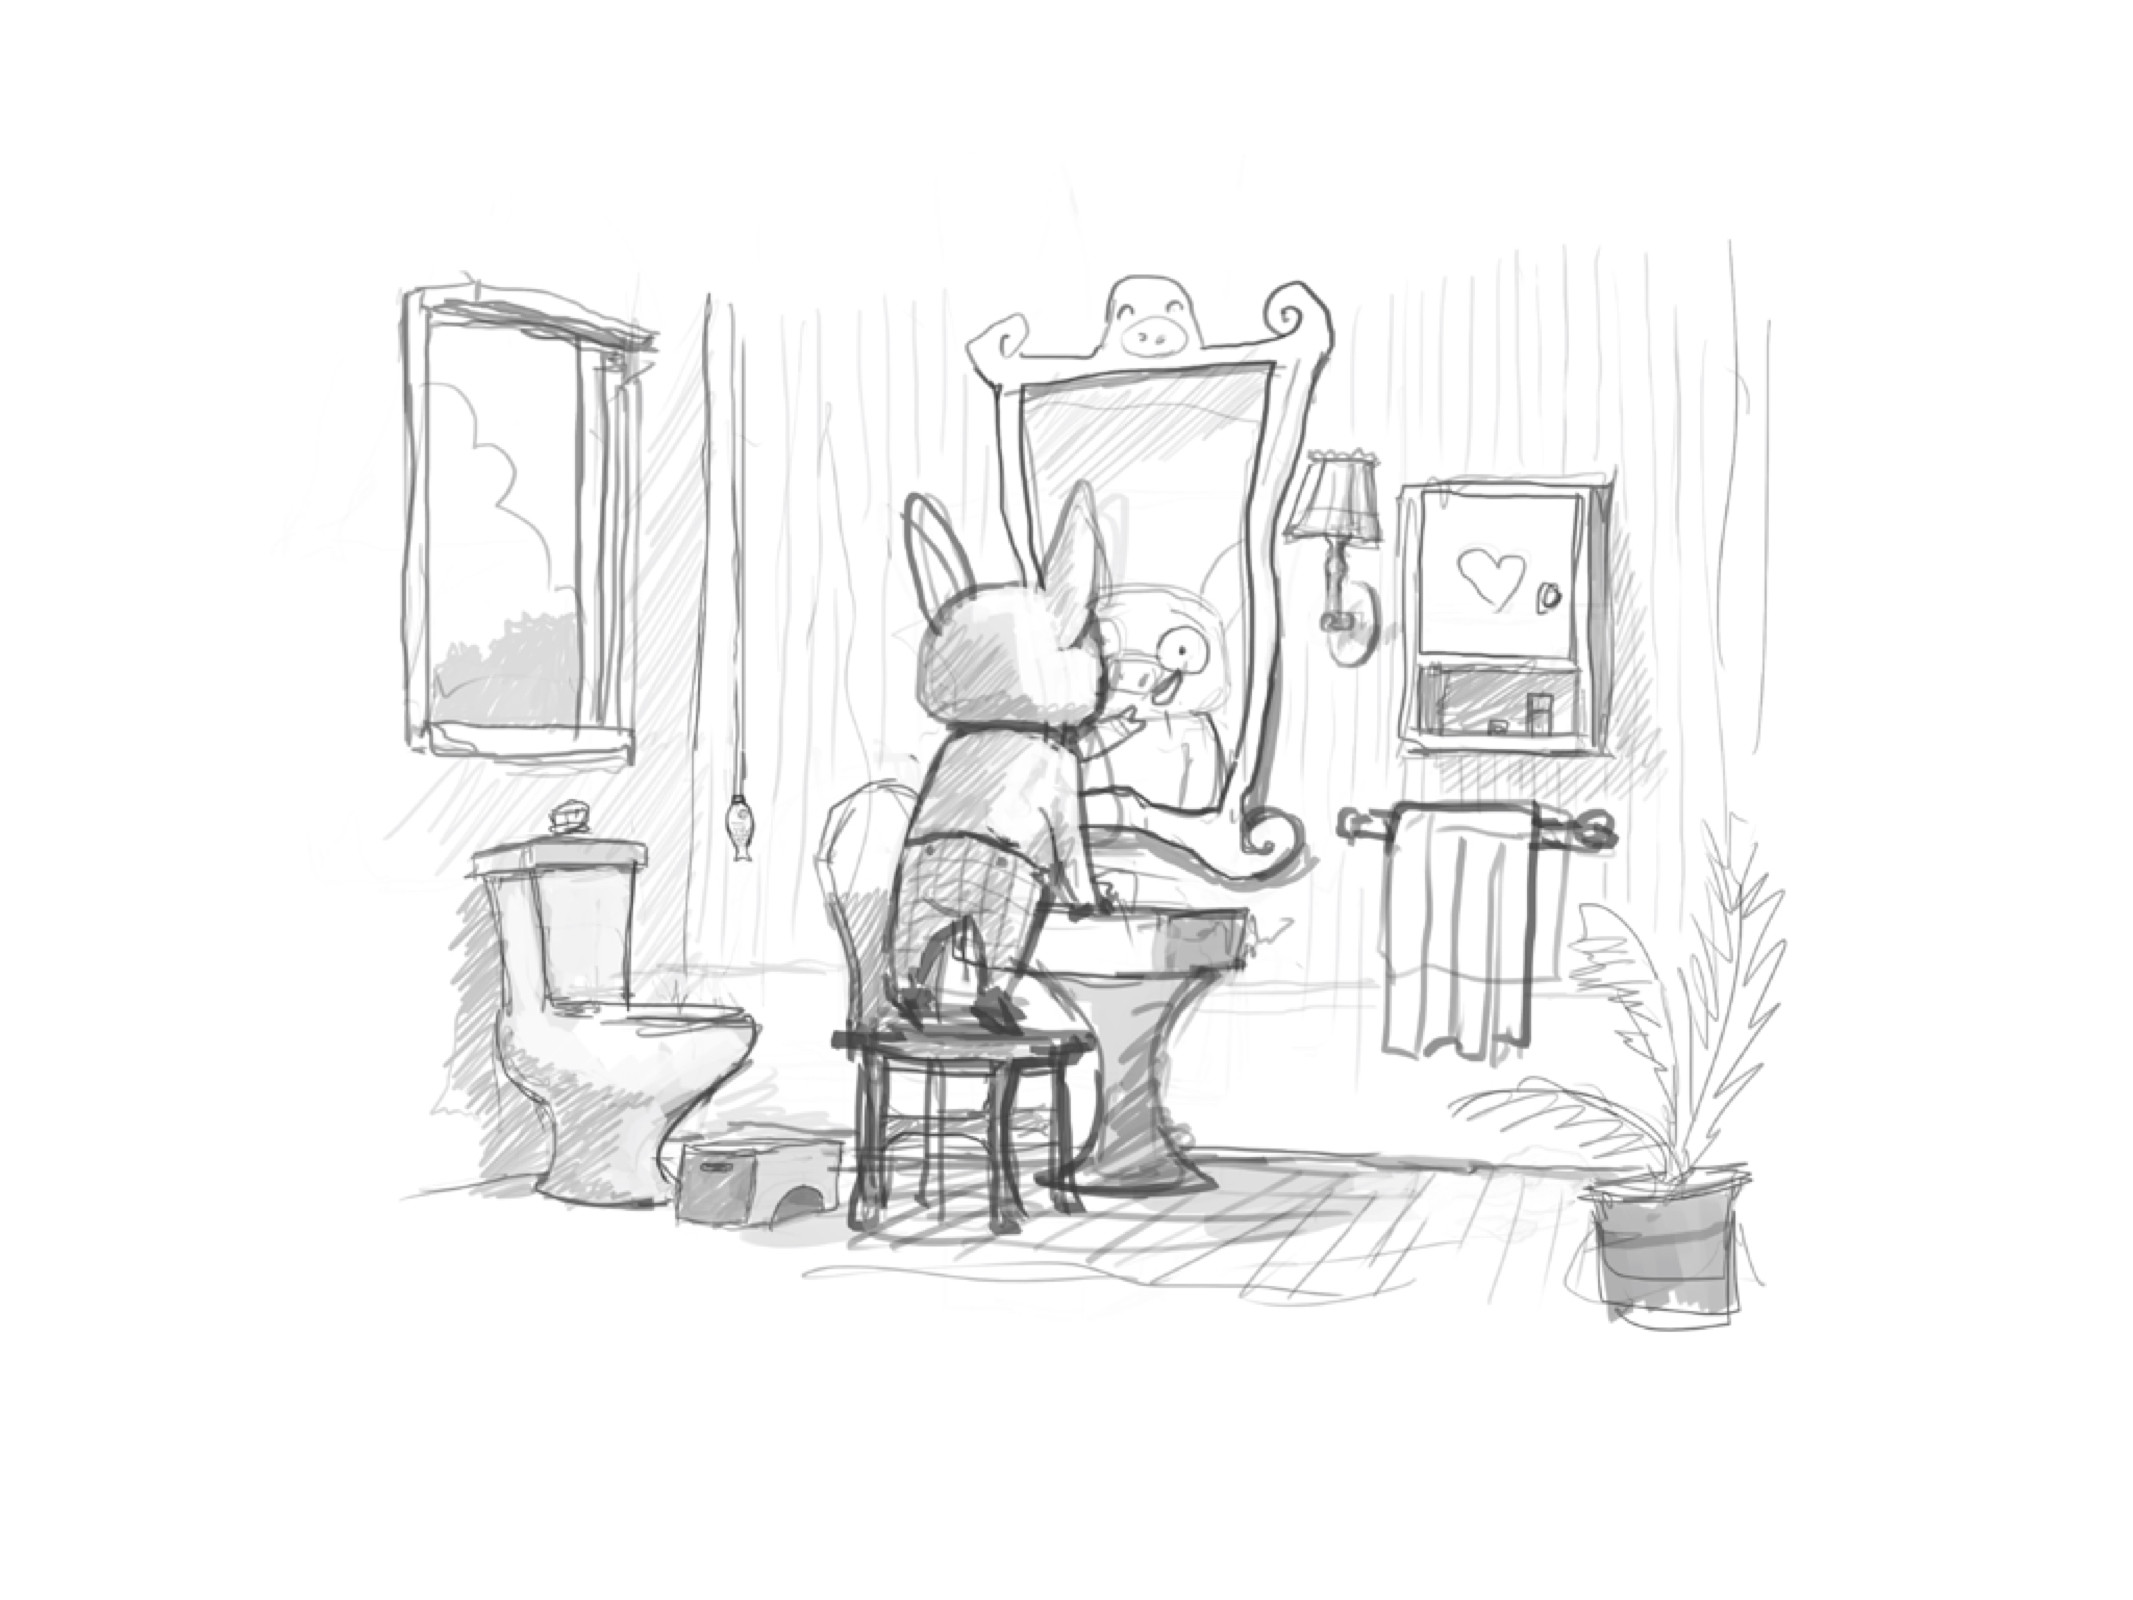 Bathroom sketch